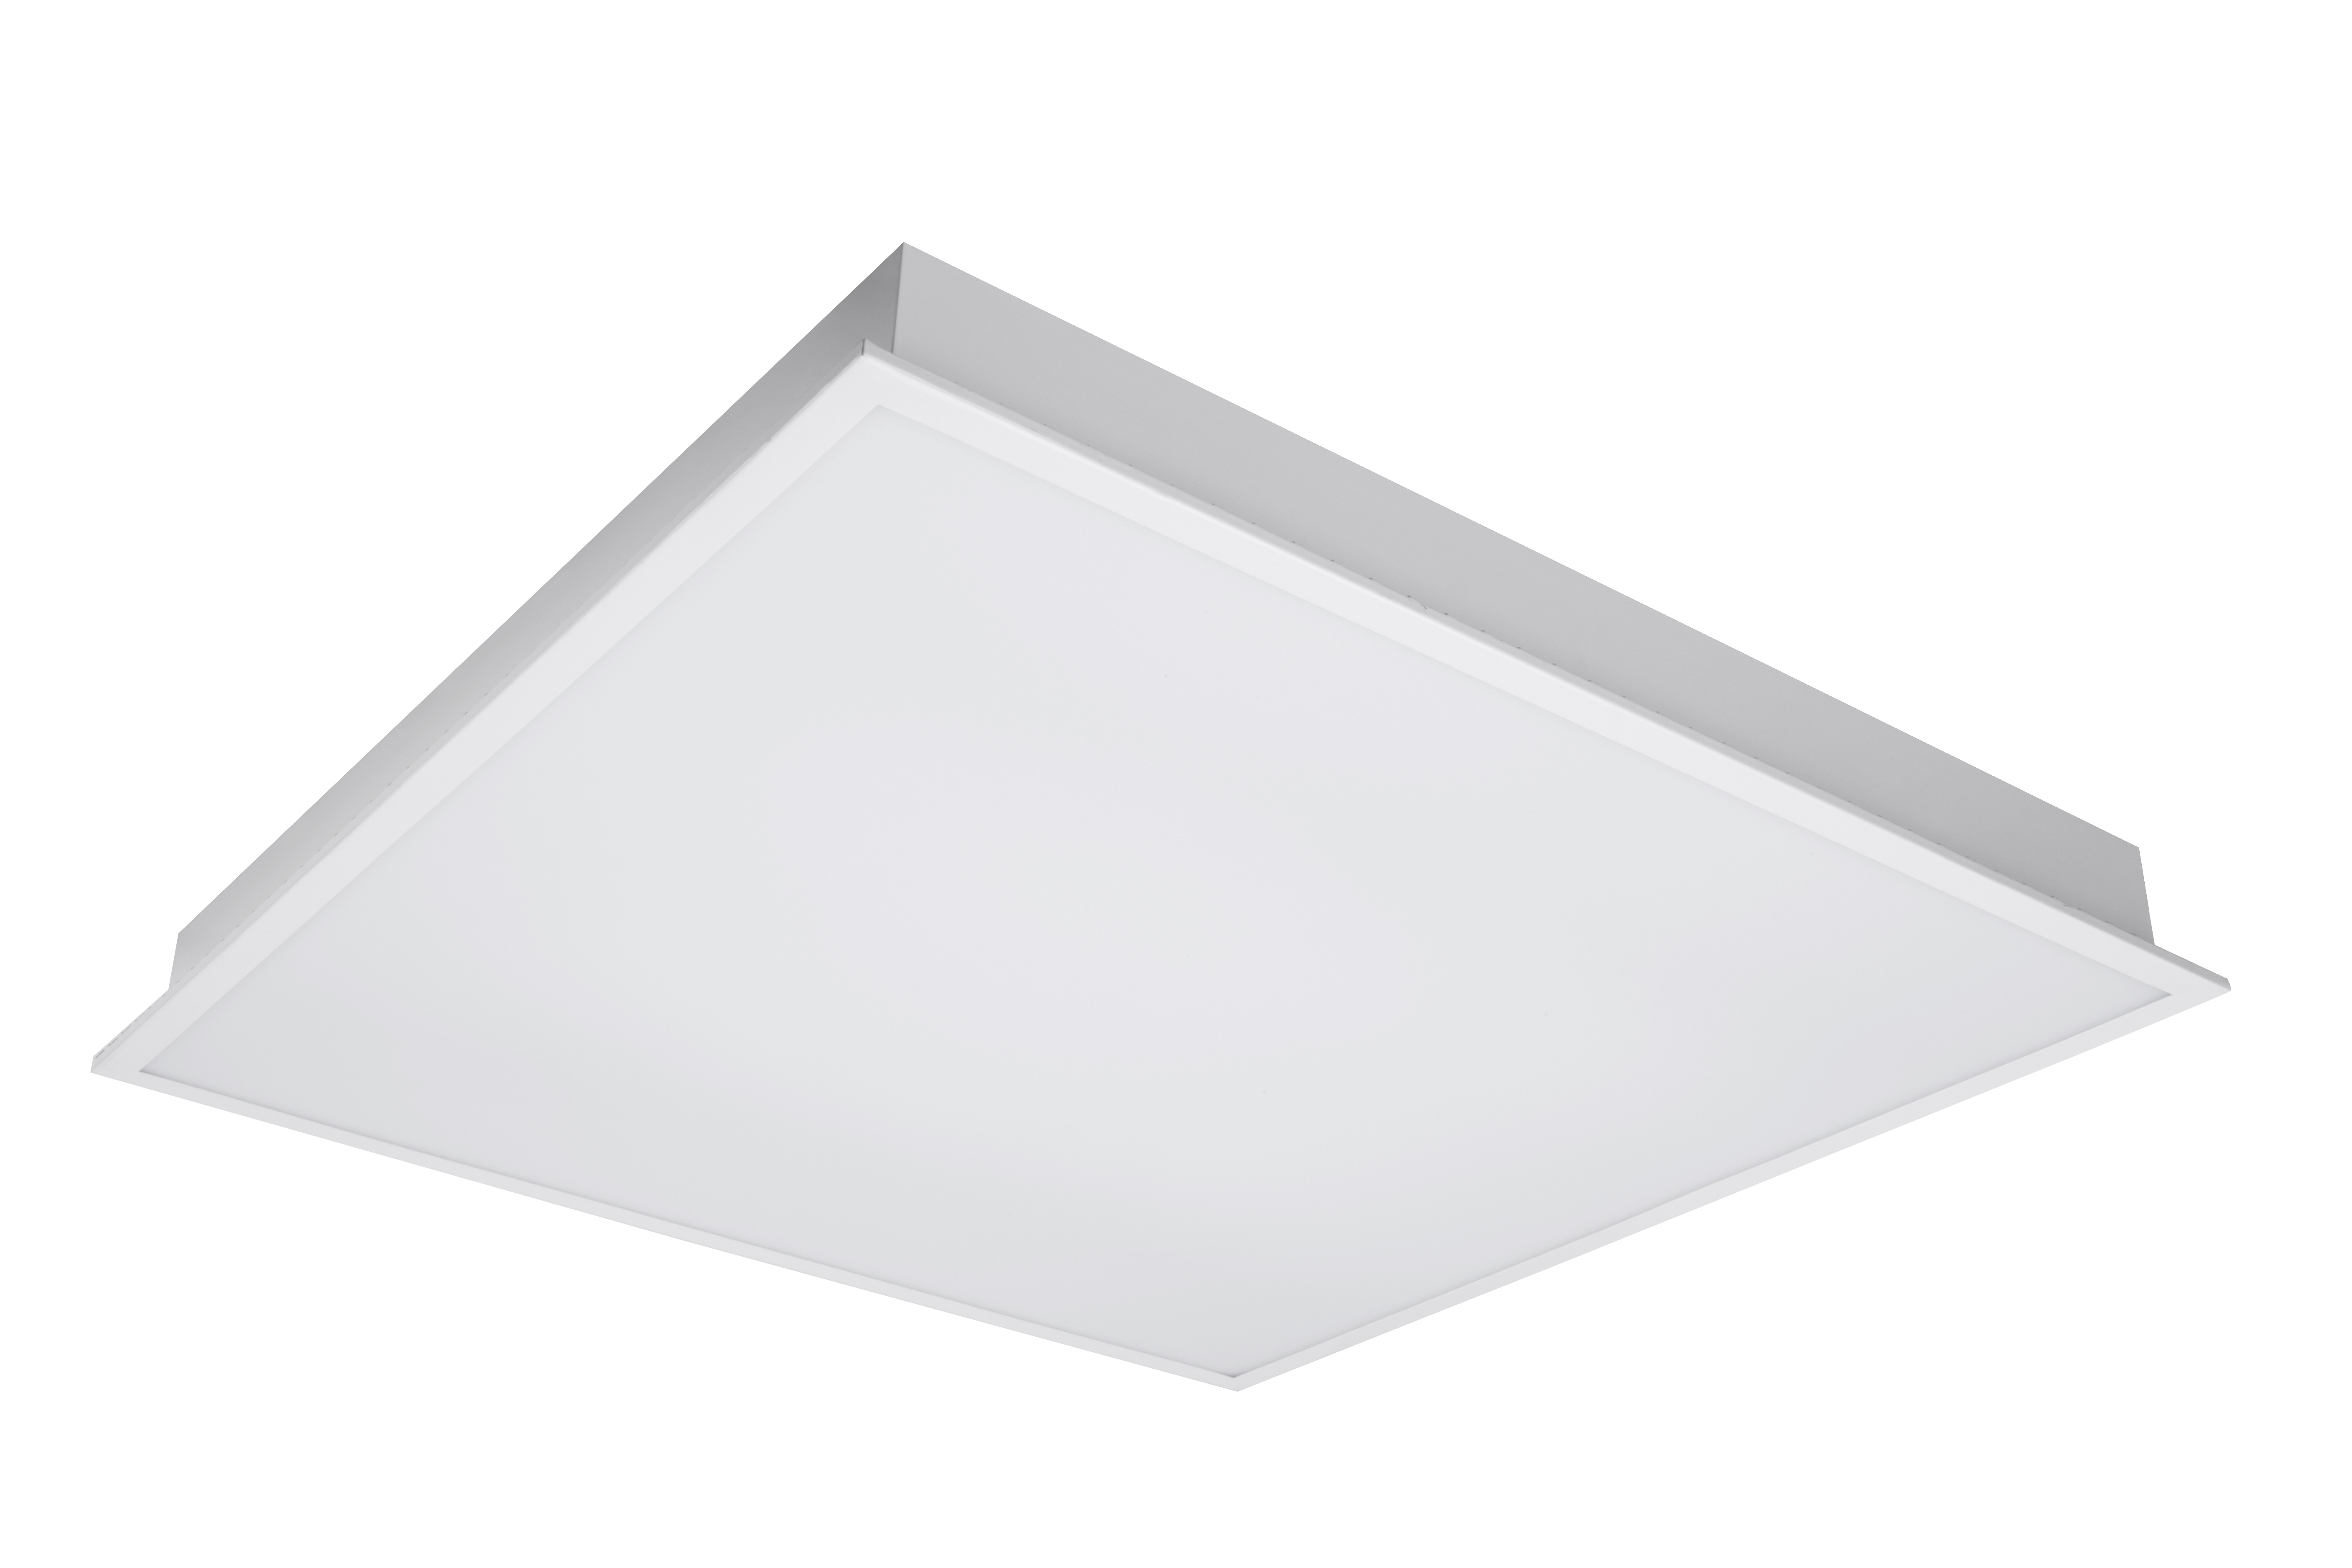 22FPL30/850/LED 81901 LED FLAT PANEL 2X2 30W 5000K 0-10V DIMMABLE